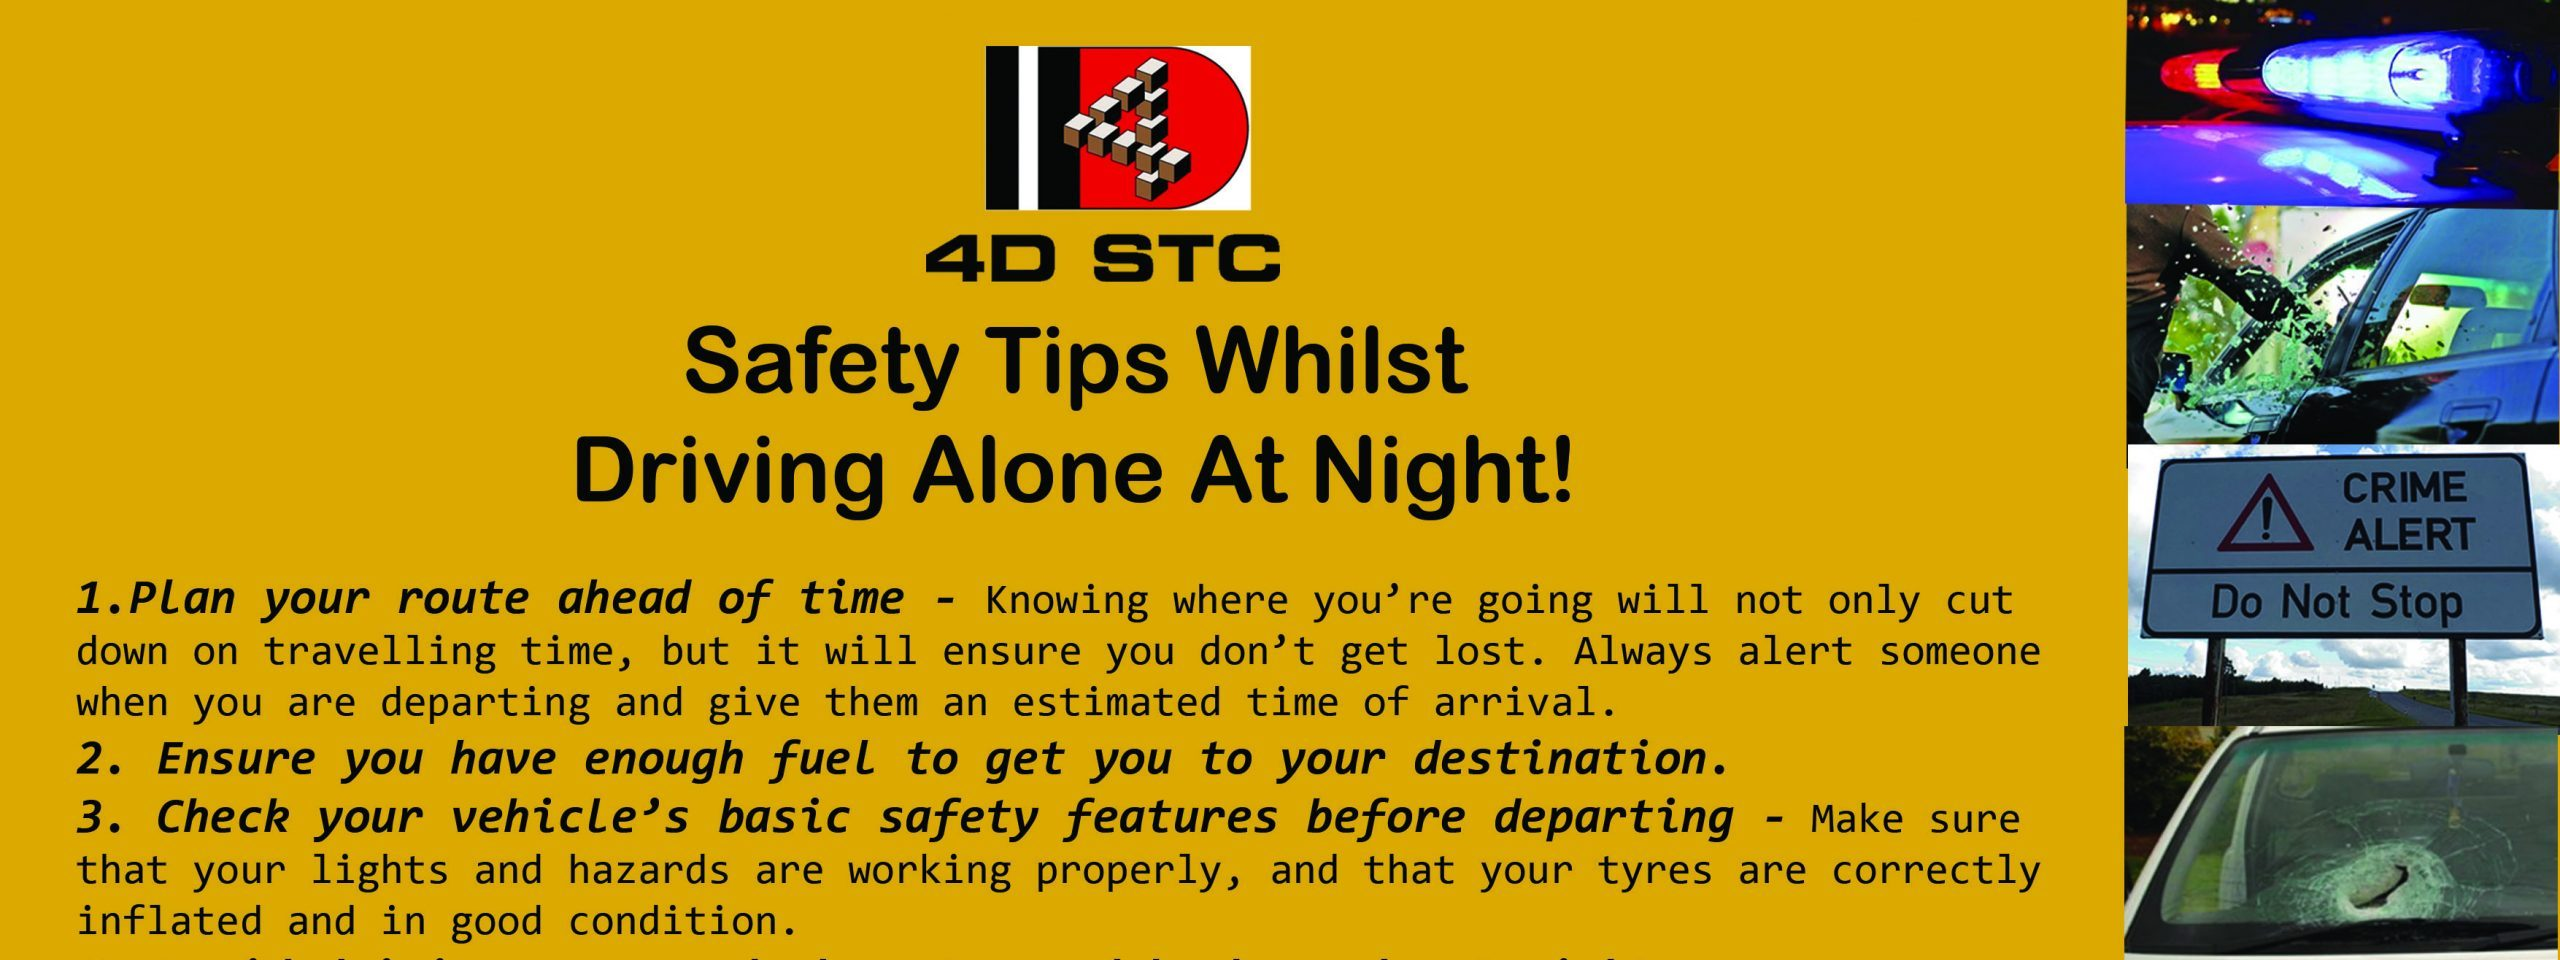 Safety Tips Whilst Driving Alone At Night